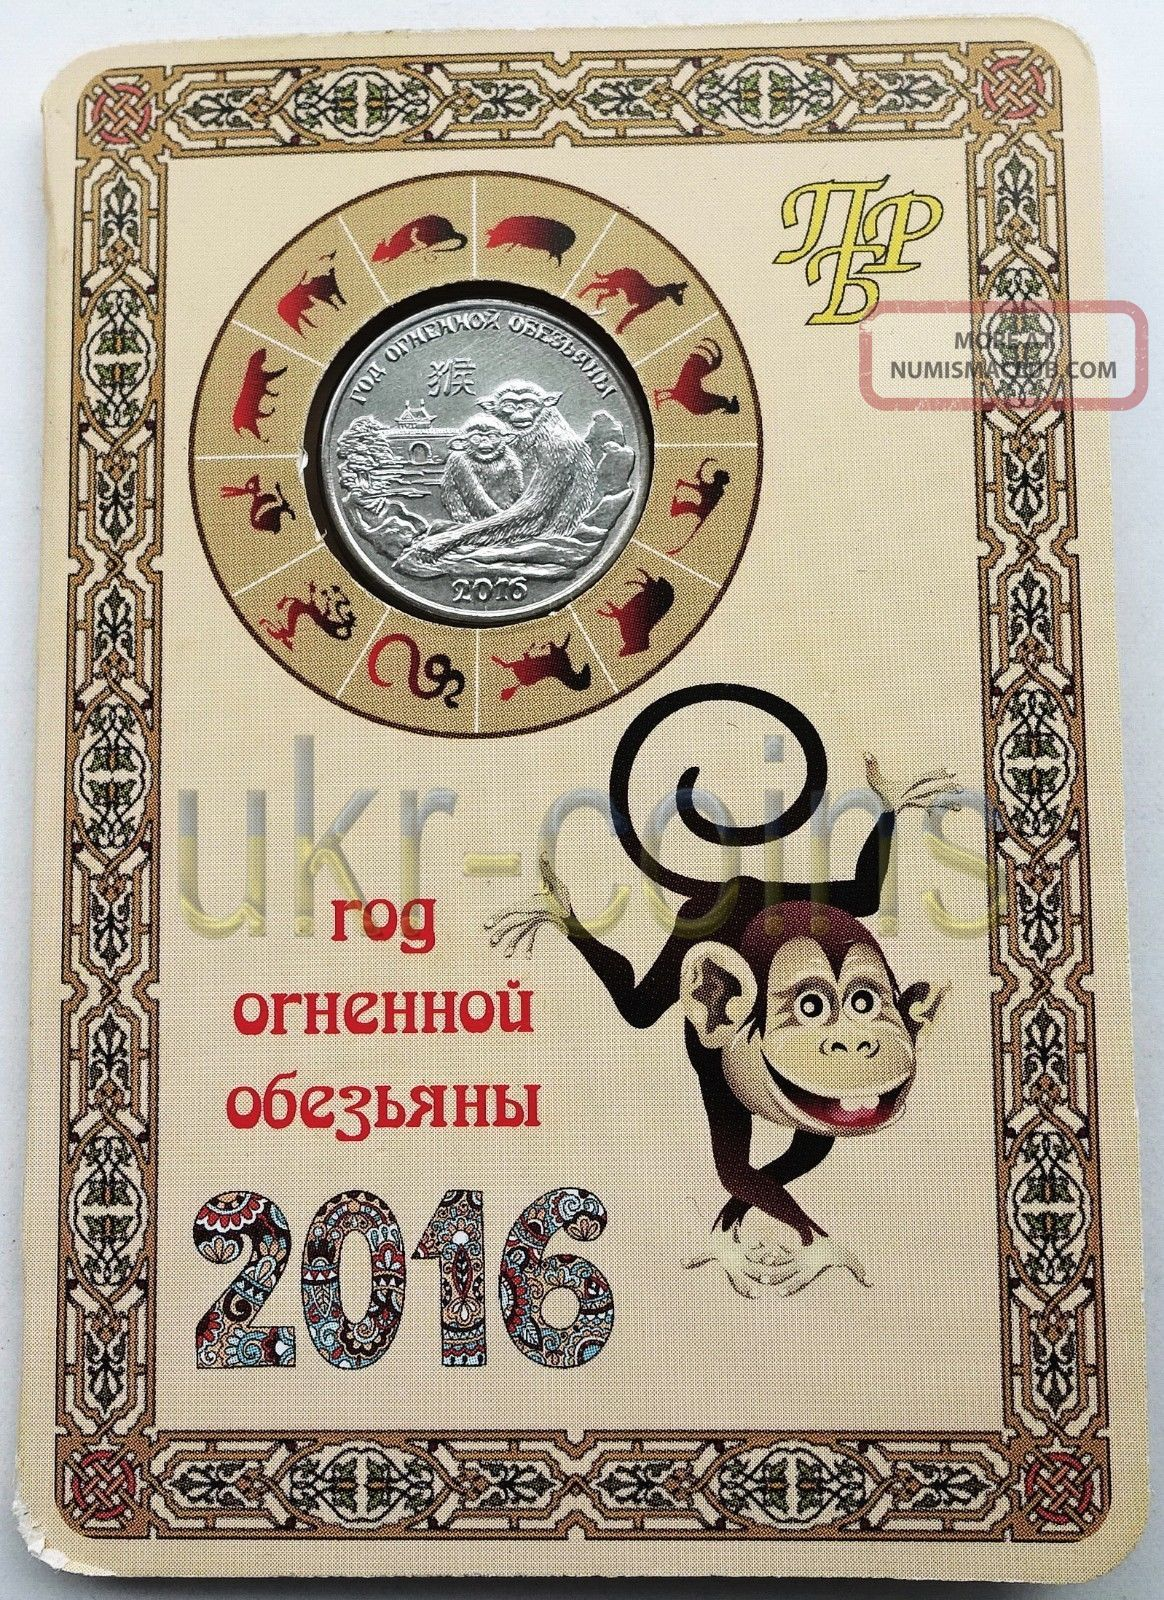 2016 Transnistria Moldova Lunar Year Of The Monkey Coin Chinese Zodiac 1 Ruble Coins: World photo